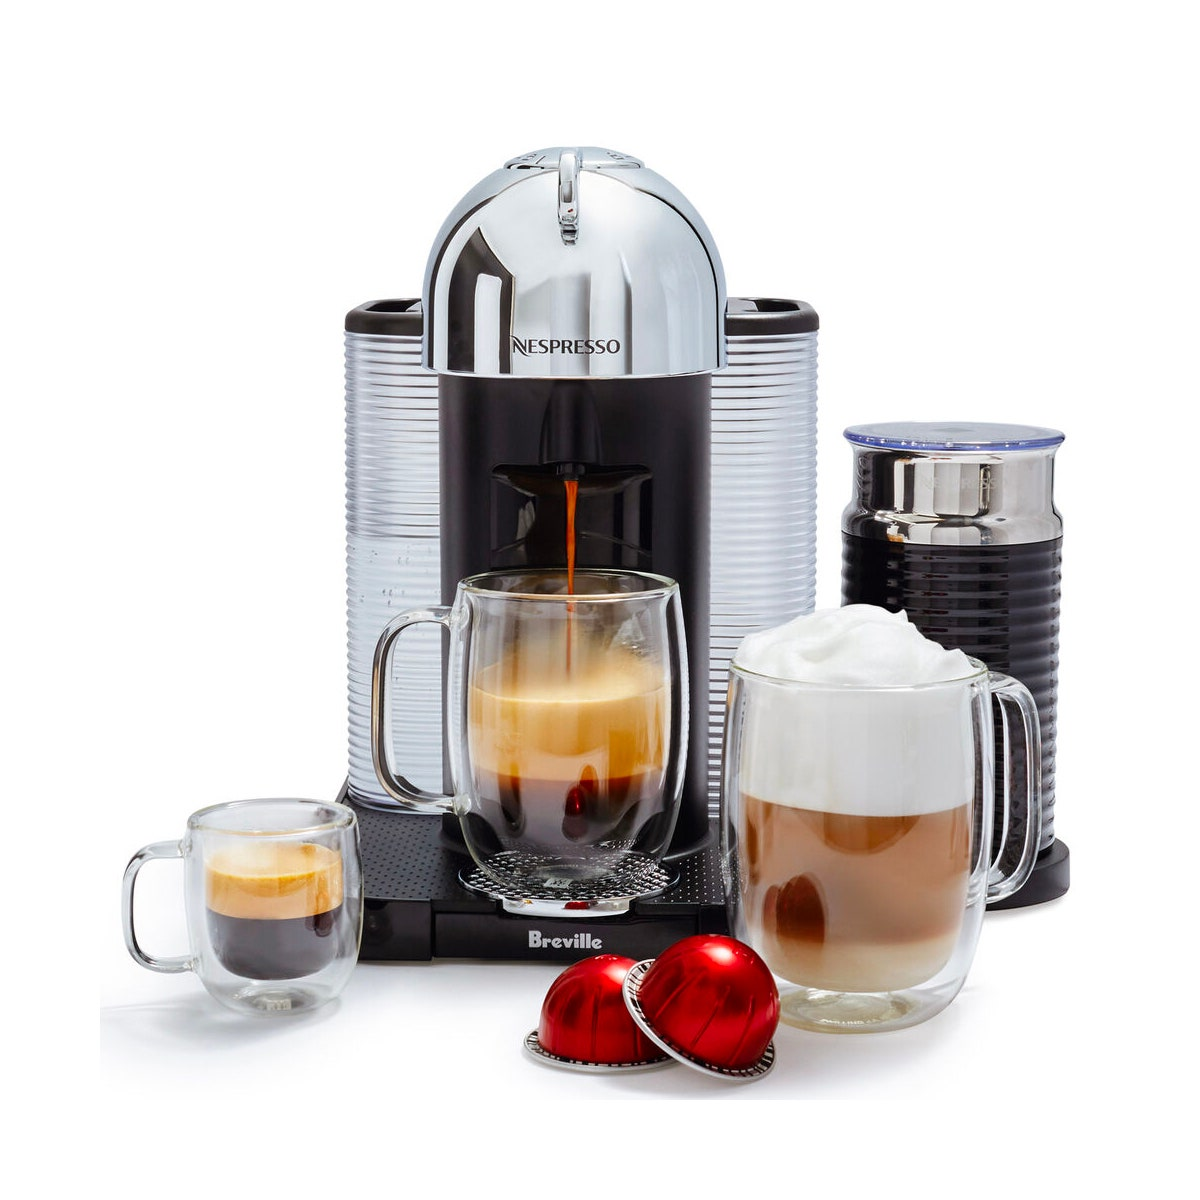 Nespresso Vertuoline by Breville With Aeroccino 3 Frother